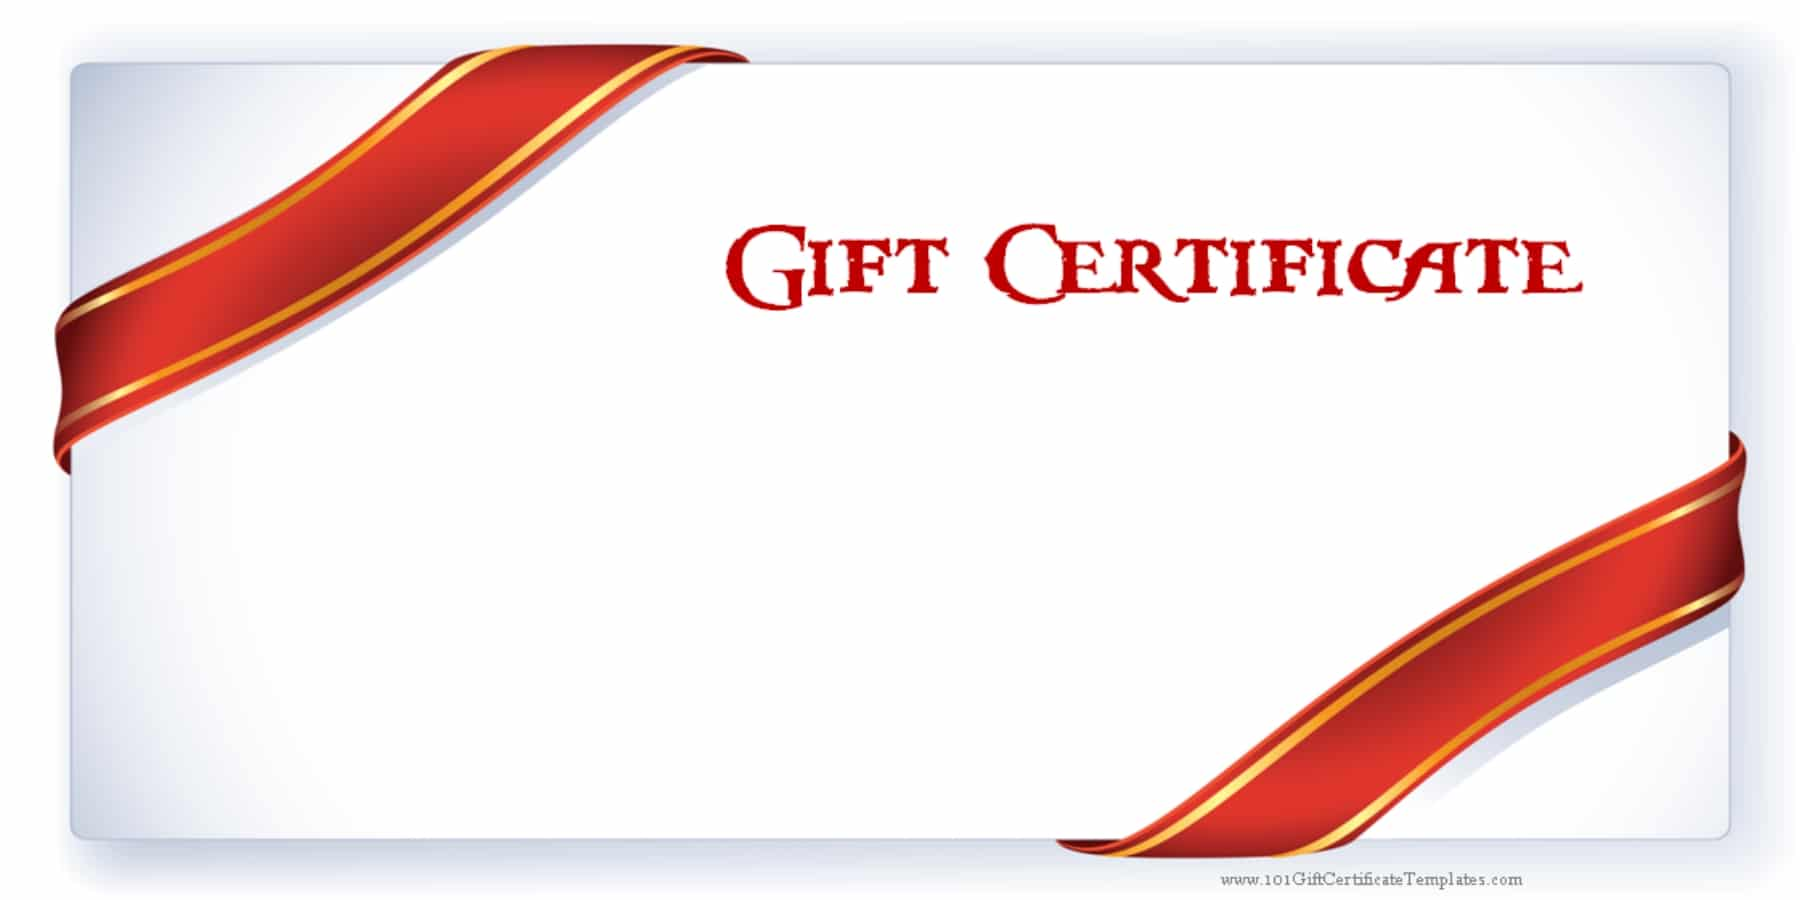 Printable gift certificate templates free printable gift card 1betcityfo Image collections